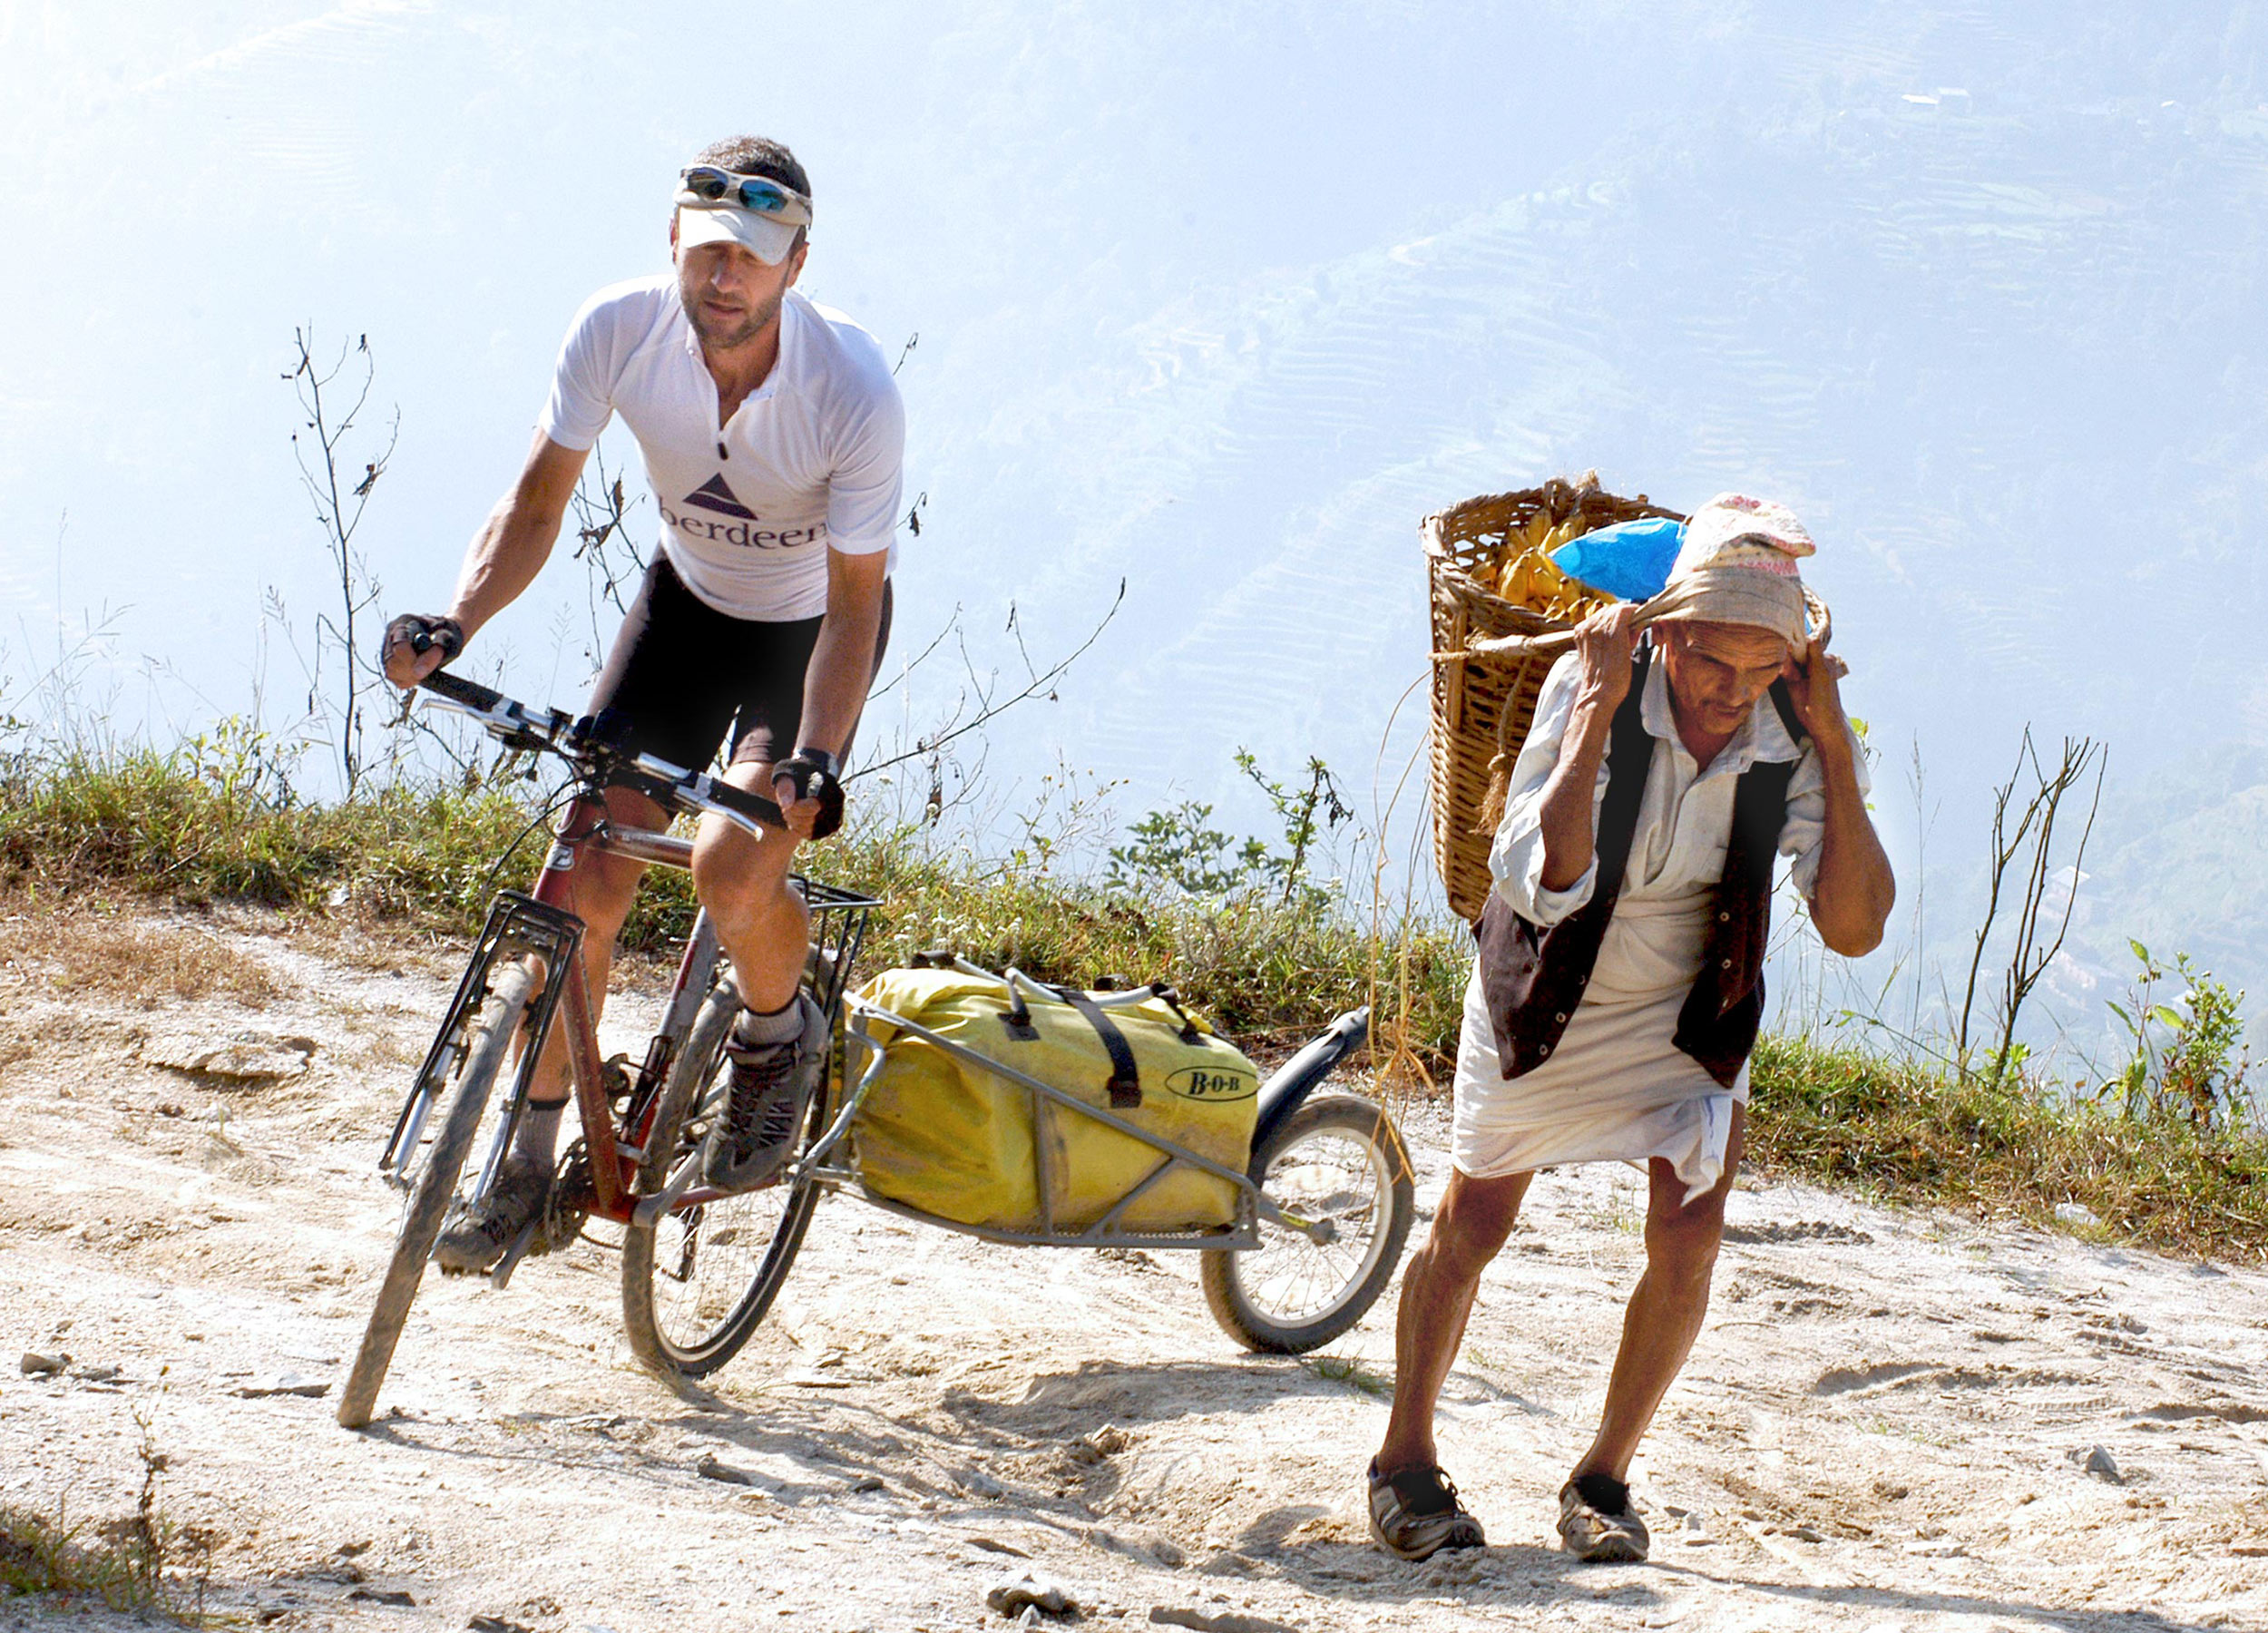 Man on a cycle with trailer going uphill past a Nepali man lugging a load in a wicker basket on his back